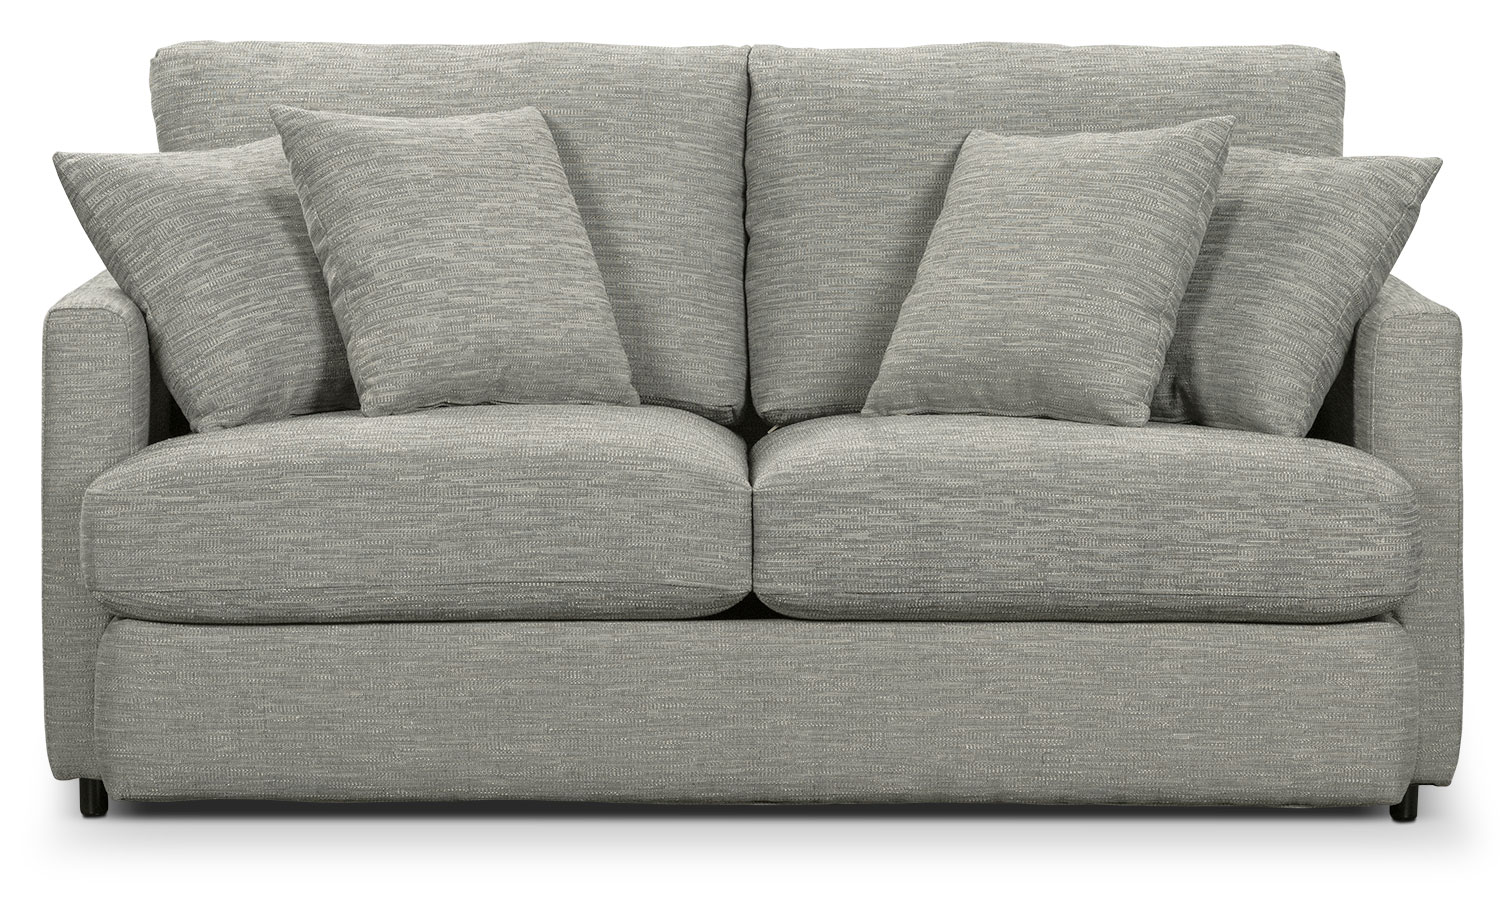 Living Room Furniture - Urbana Chenille Full-Size Sofa Bed - Light Grey